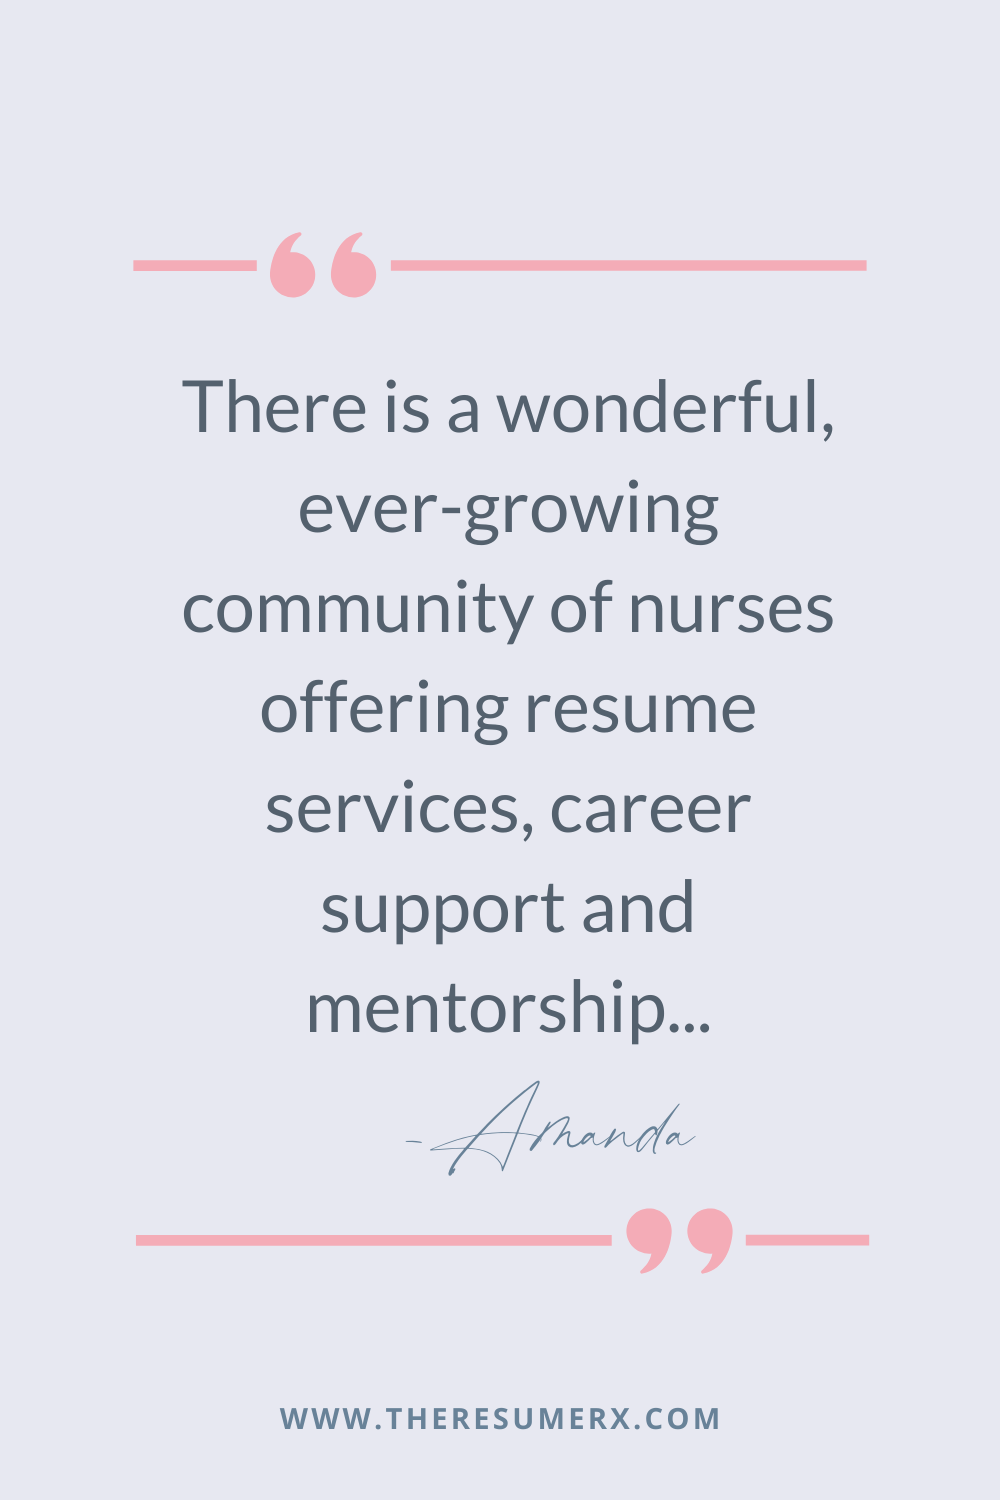 The Best Resume Writers & Career Coaches for Nurses The